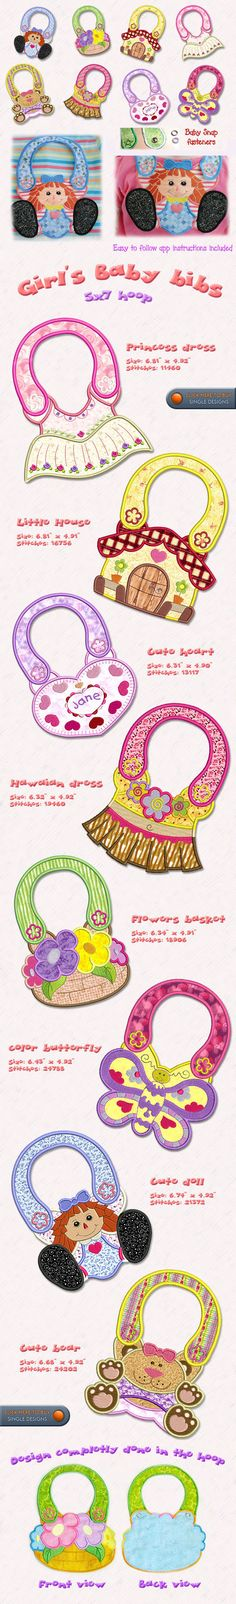 completely in the hoop baby bibs Machine Embroidery Projects, Machine Embroidery Applique, Applique Patterns, Cross Stitch Embroidery, Sewing Patterns, Baby Sewing, Baby Bibs, Sewing Projects, Quilts